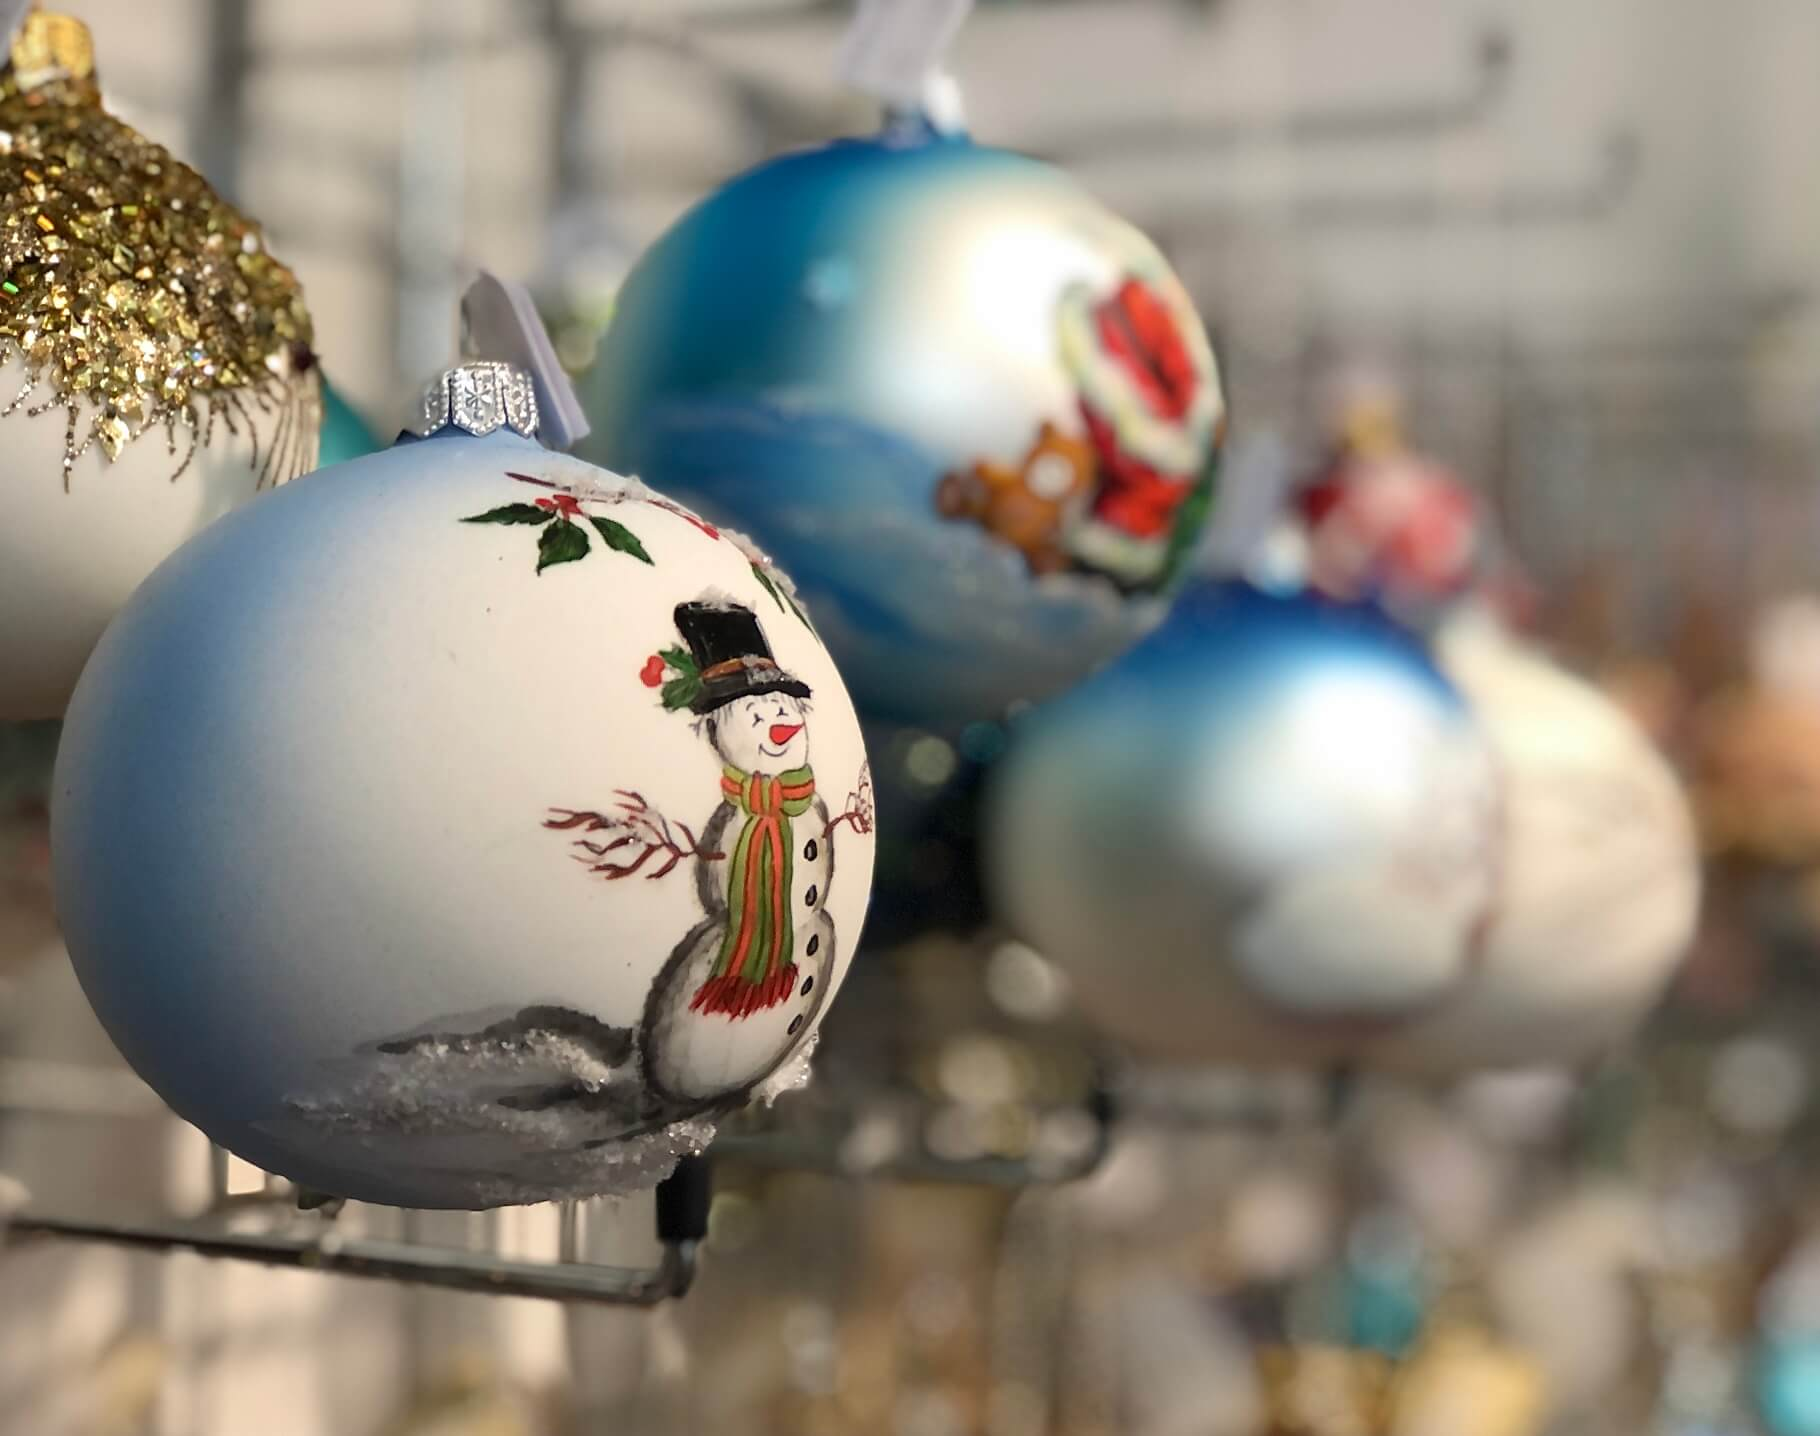 Handpainted Baubles From Poland on sale in Tidings